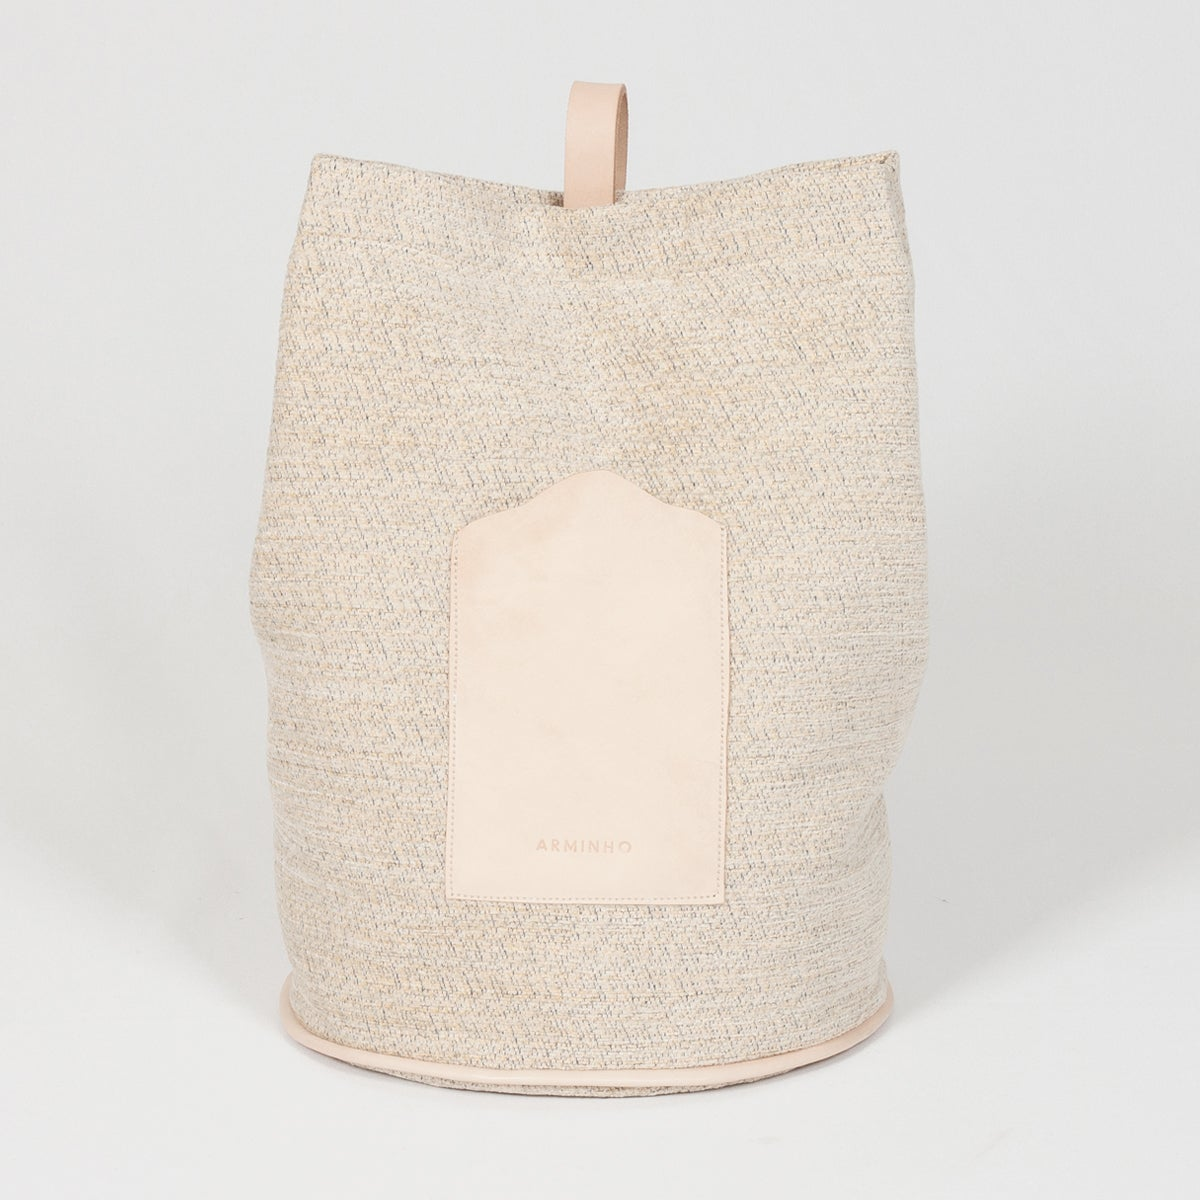 Image of Bucket Bag Beige - beige pattern